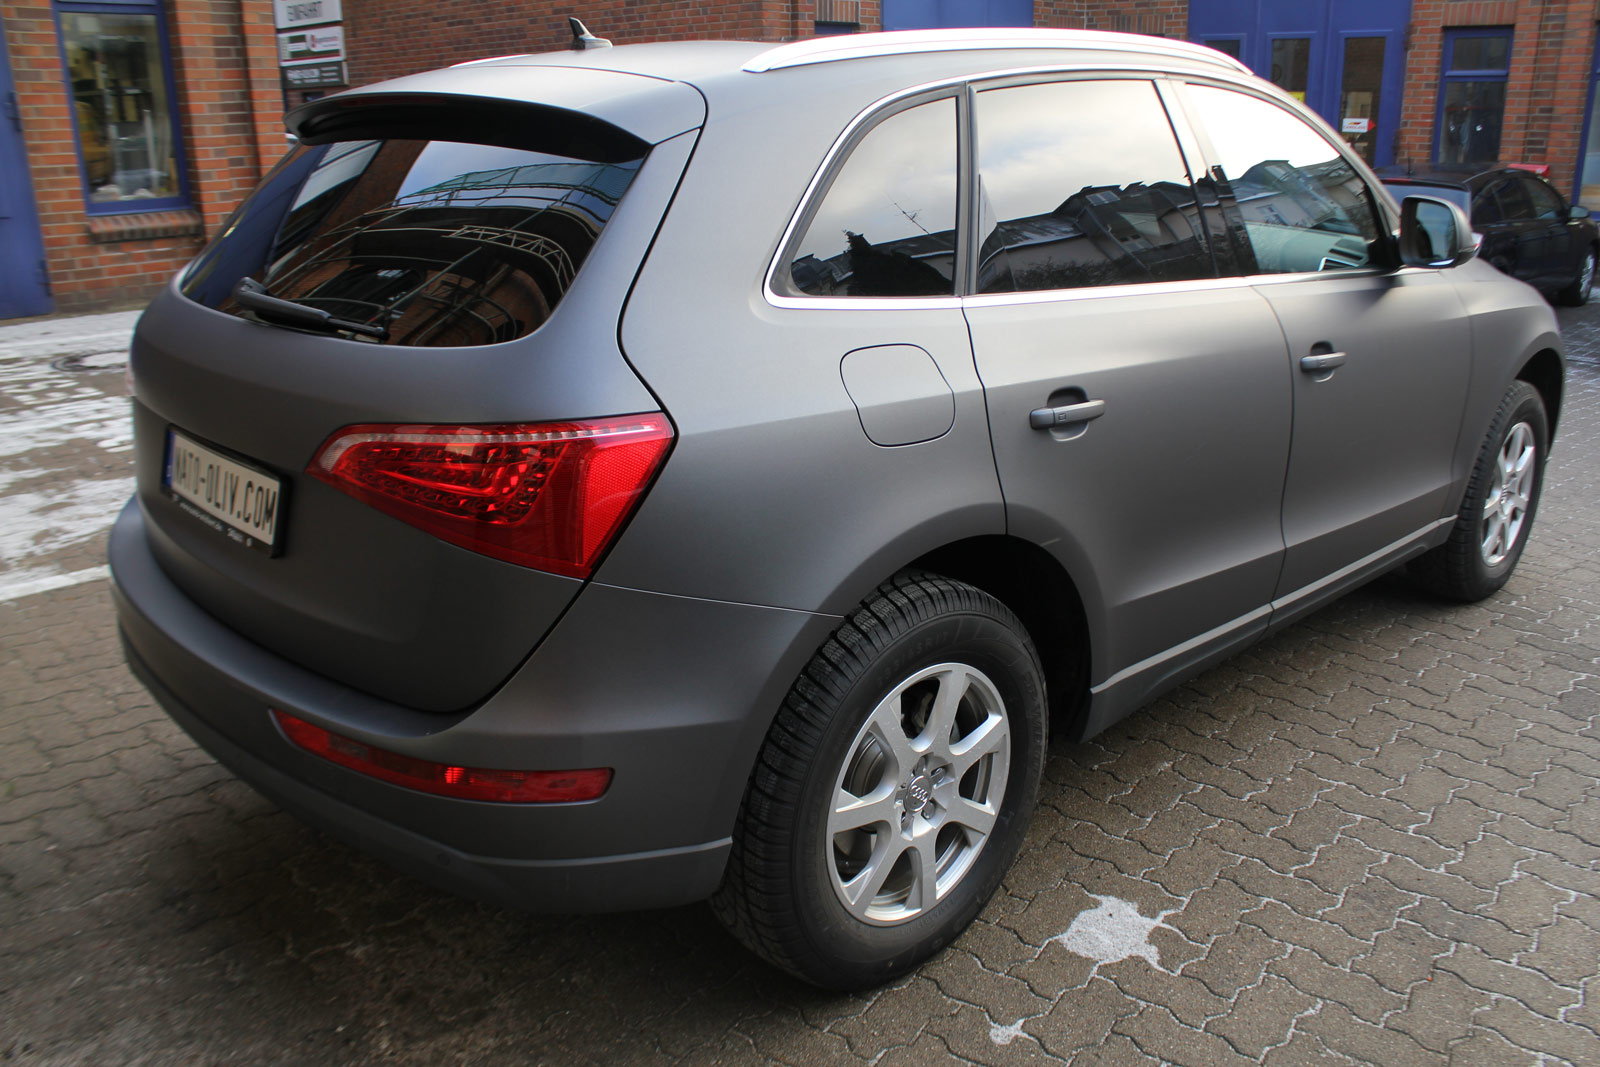 Audi_Q5_Folierung_Anthrazit_Matt_Metallic_24